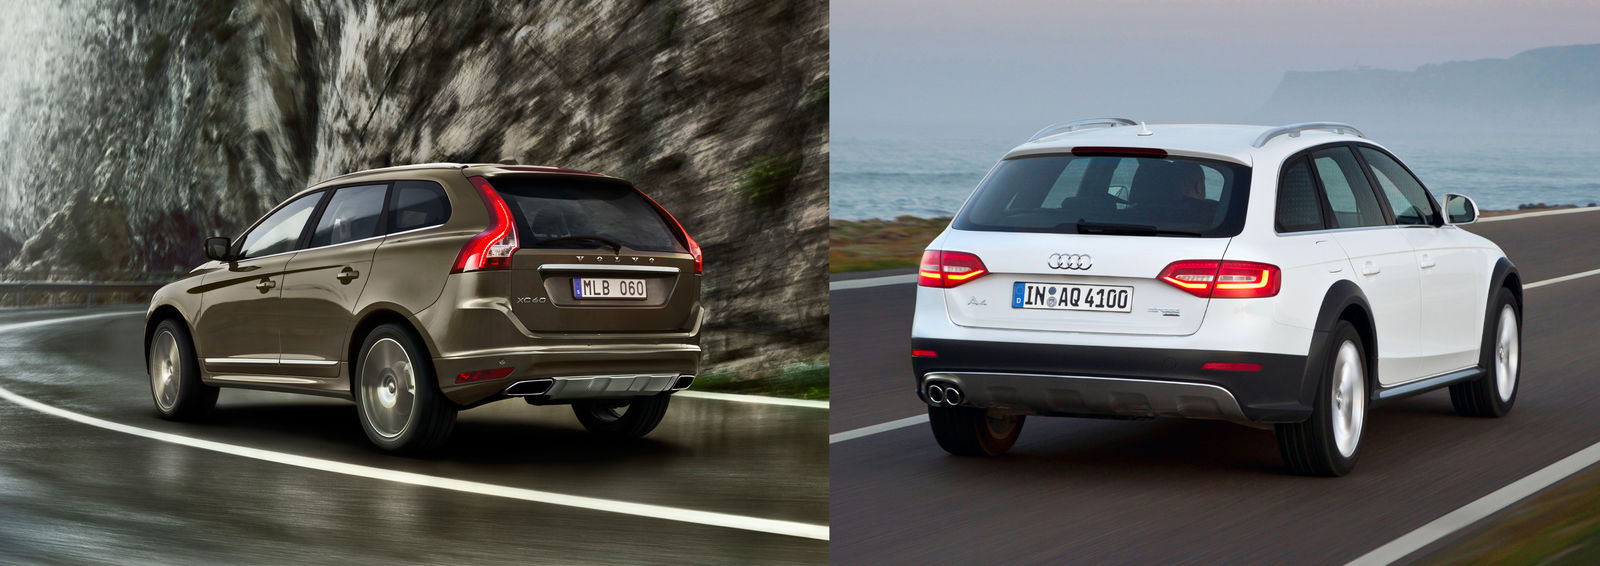 Volvo XC60 vs Audi A4 Allroad  UK side by side comparison  carwow